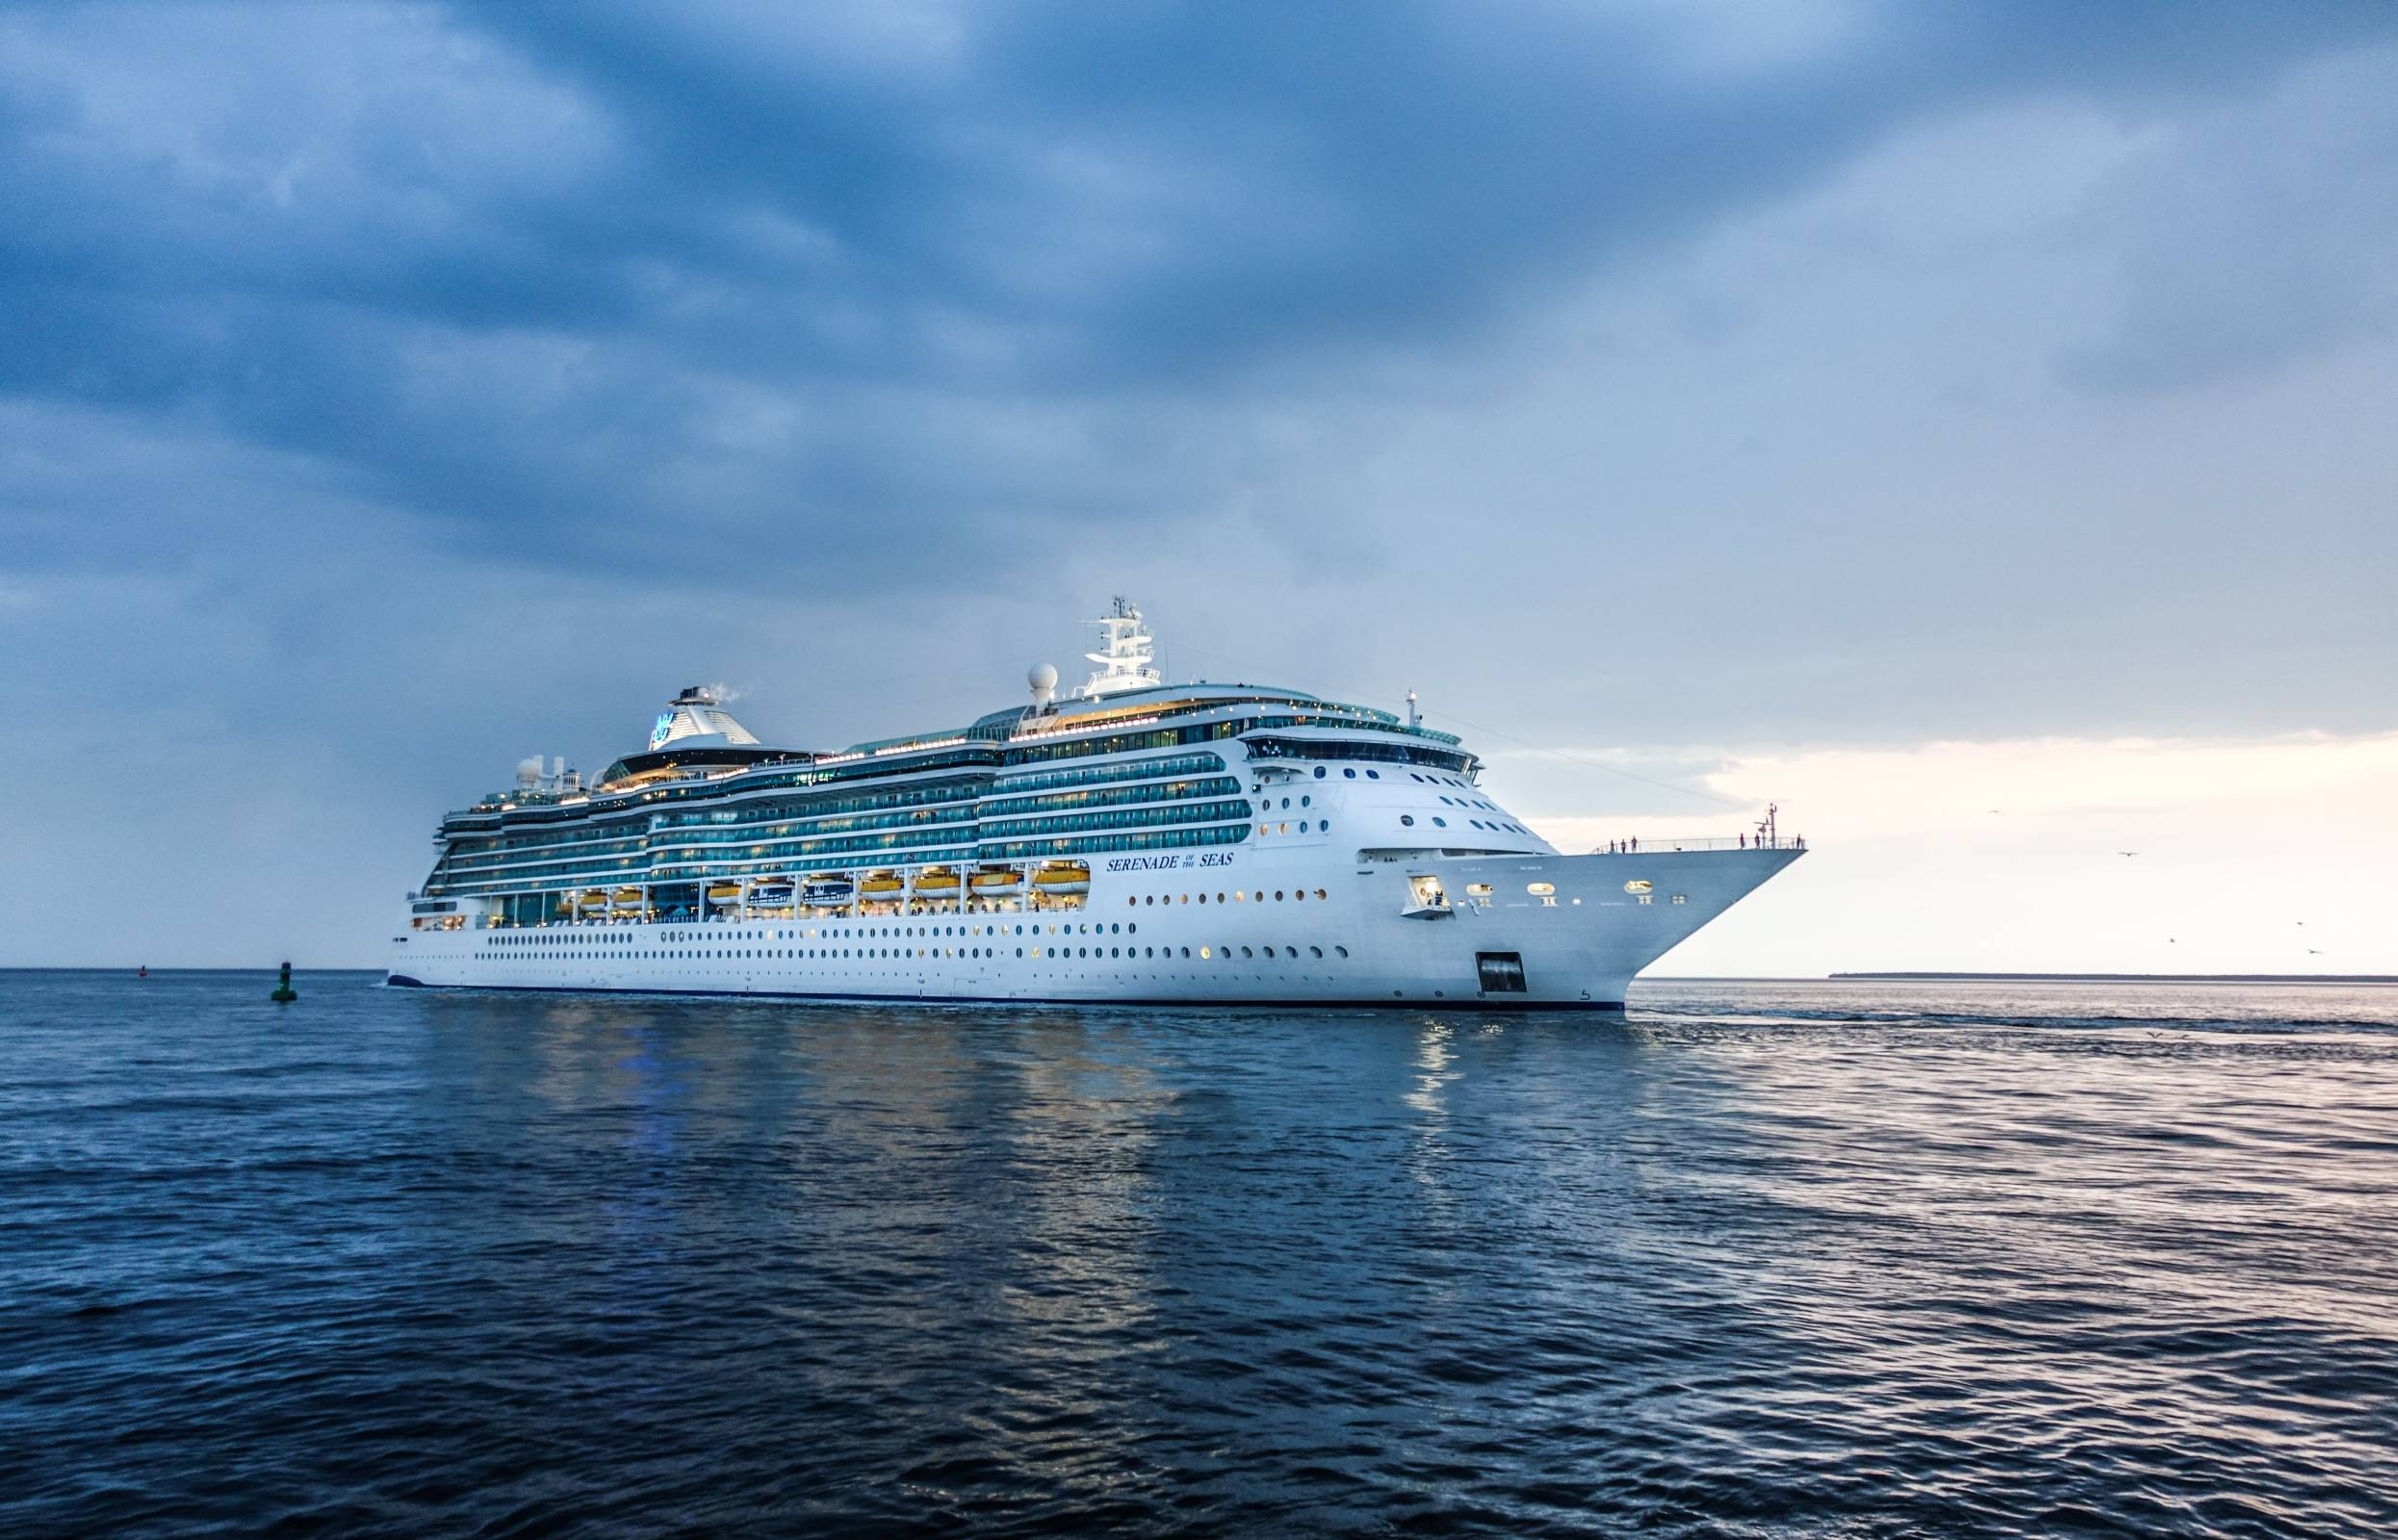 4 Cruise Ship Illnesses Remain Classified As Unknown